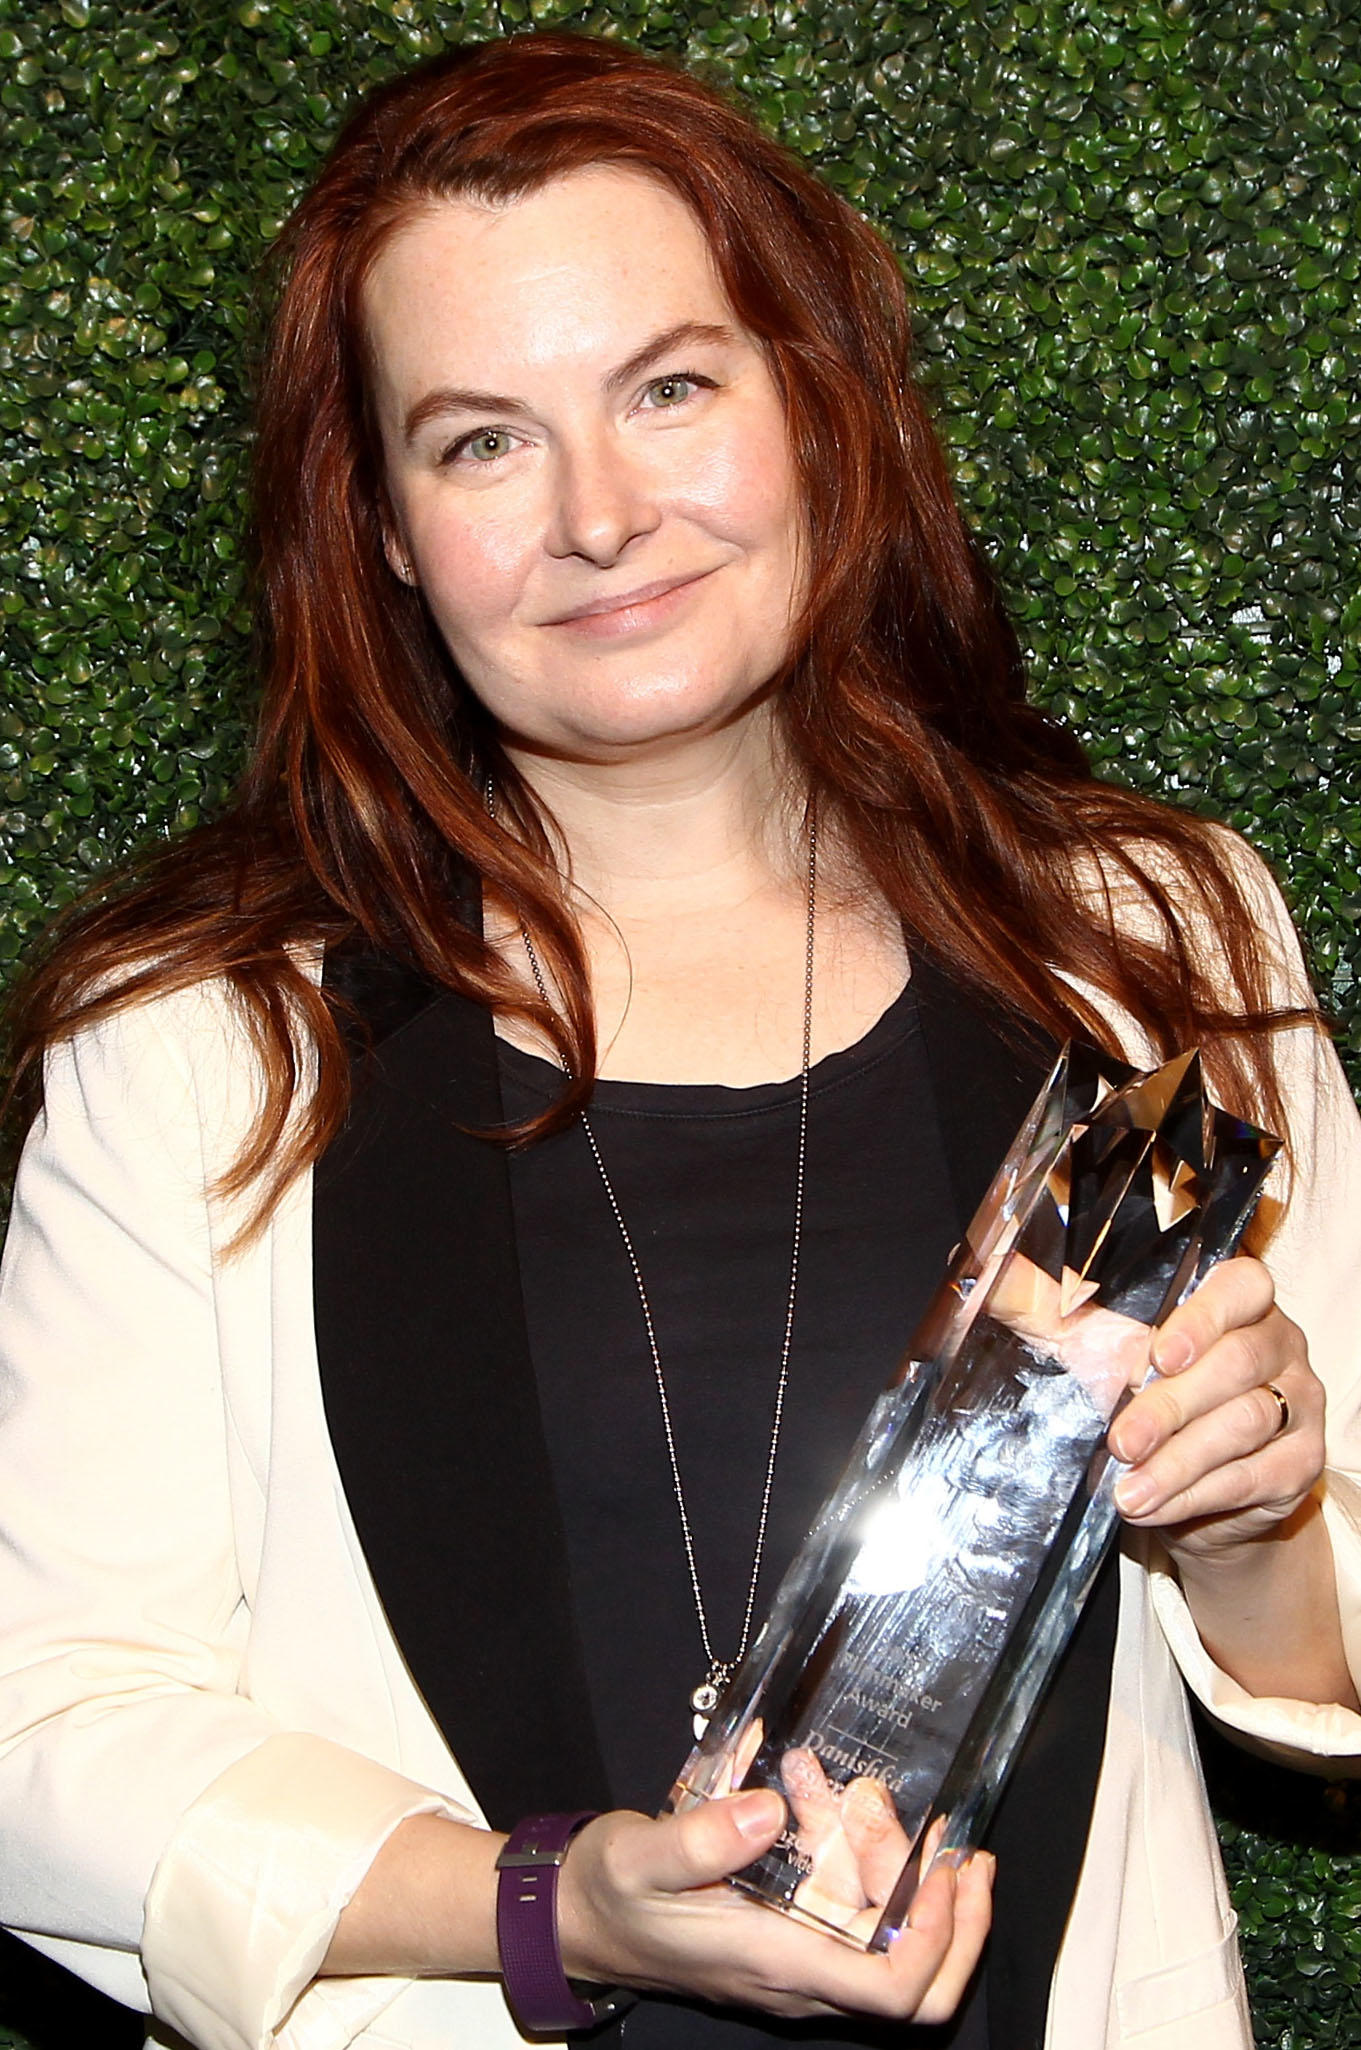 AVD Award recipient Danishka Esterhazy during the 2017 Sundance Film Festival.